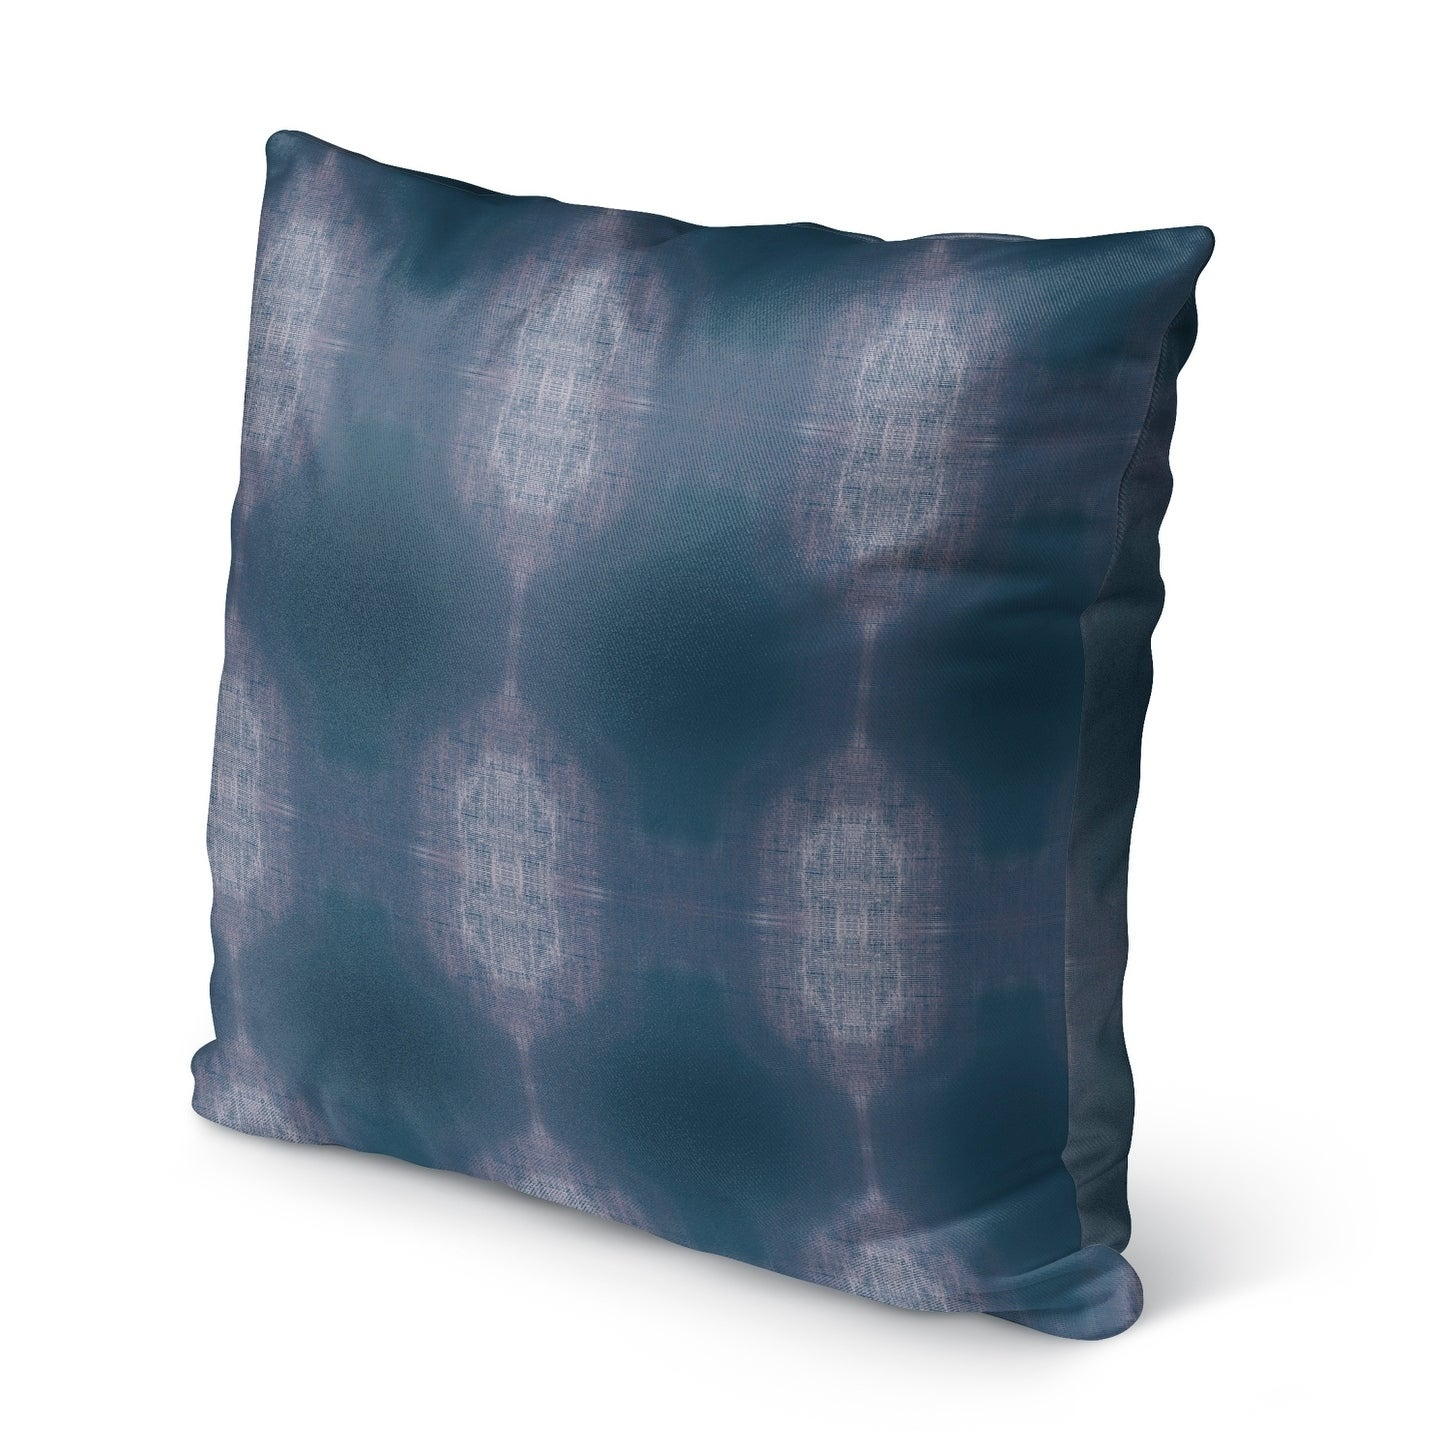 Shop Kavka Designs Blue Purple Tie Dye Outdoor Pillow With Insert